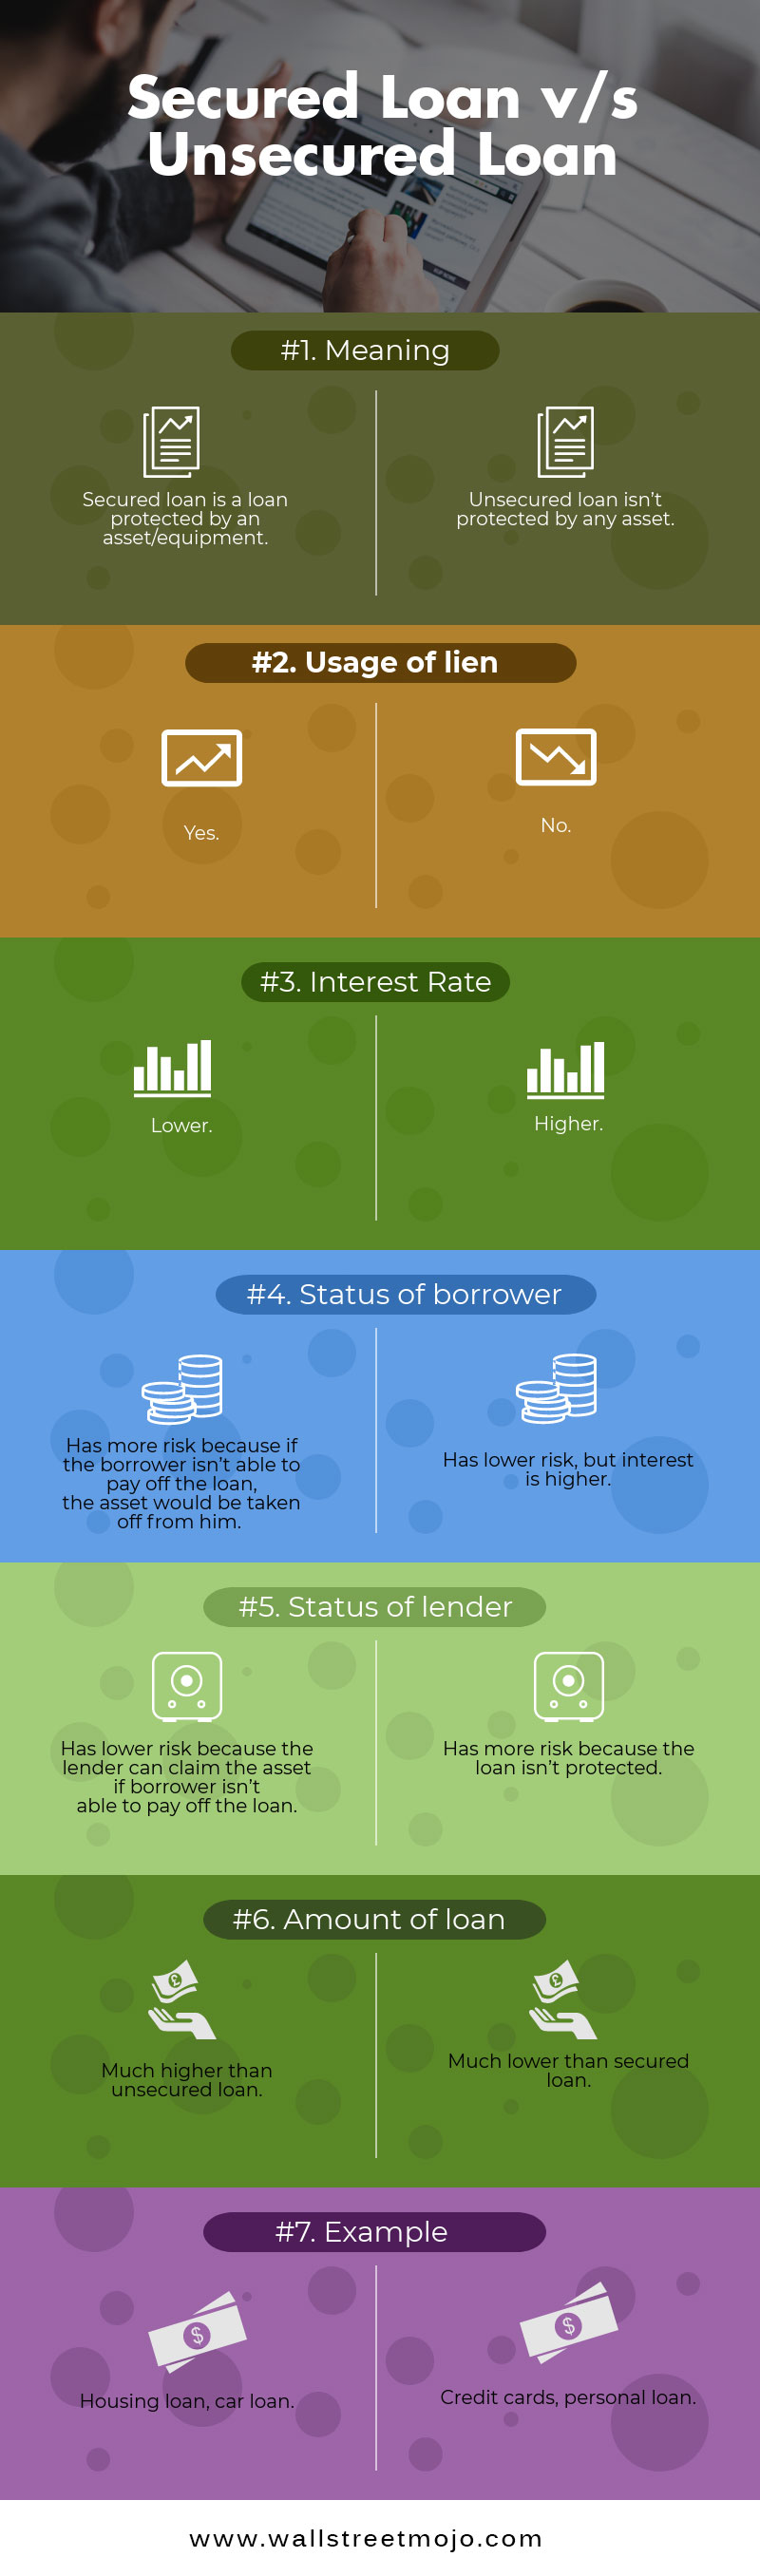 Secured Loan vs Unsecured Loan Infographic